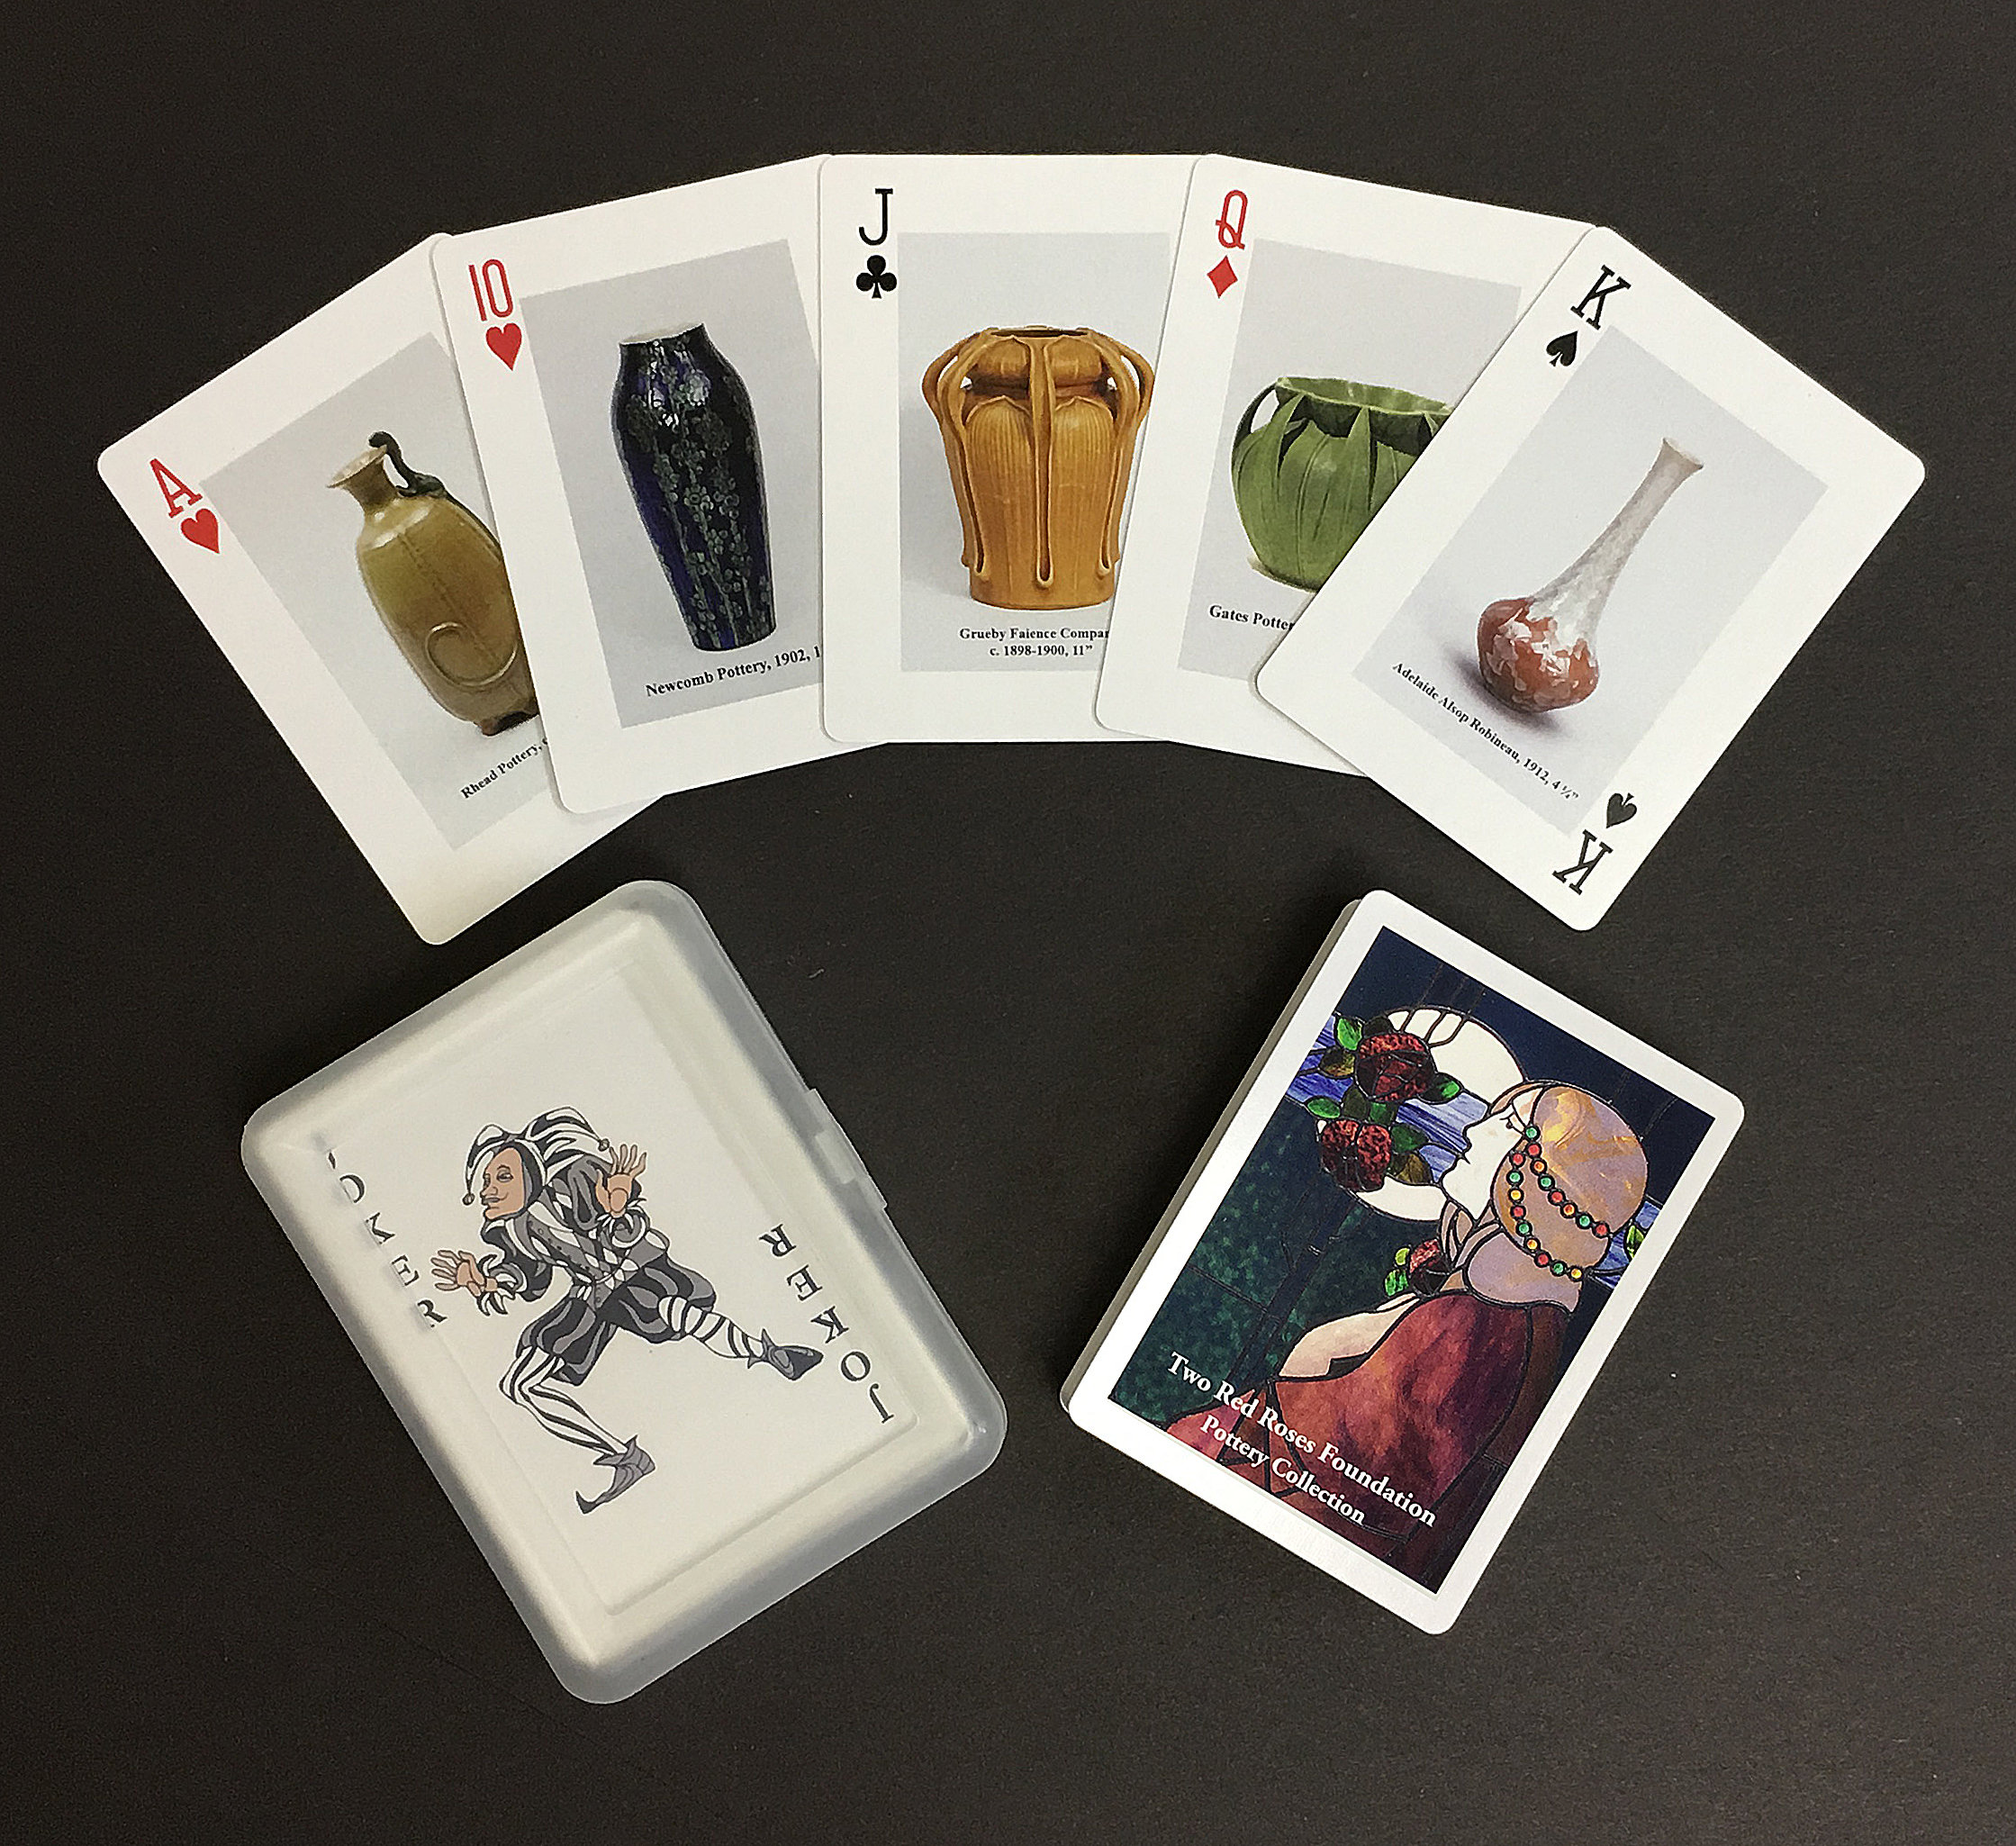 This is the first in the Playing Cards Portfolio featuring rare pottery followed by future decks focusing on furniture, metalwork, lighting, photography, and woodblocks.